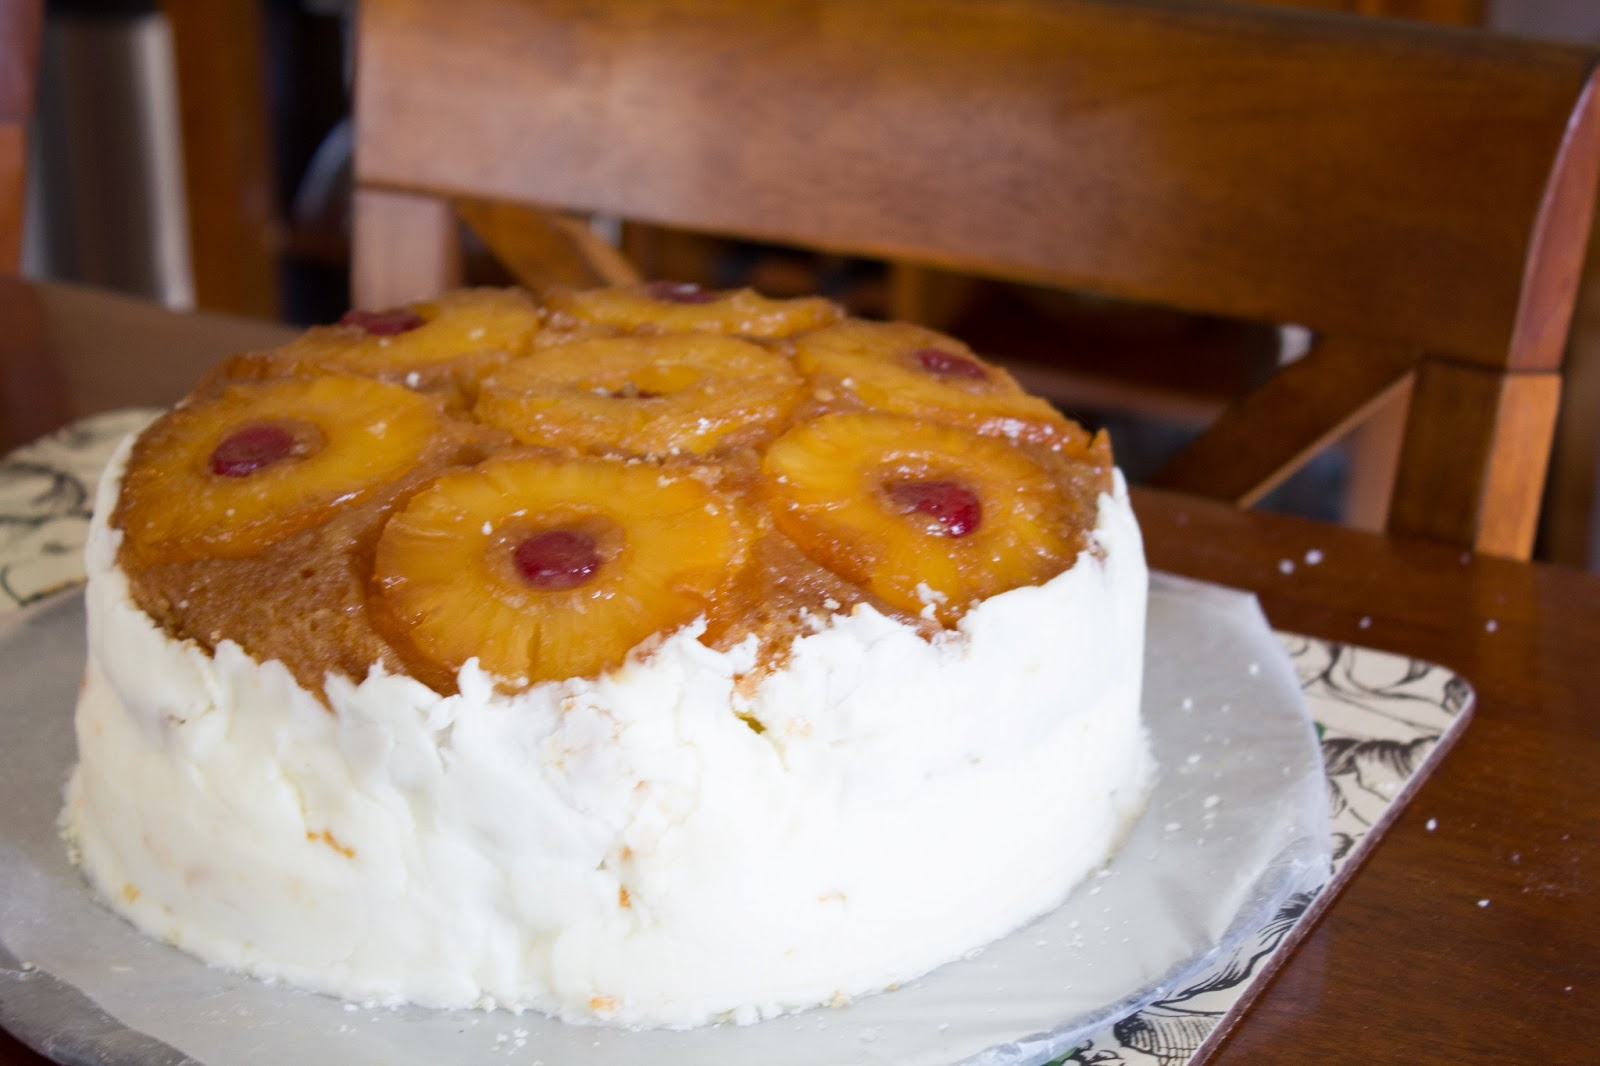 Culinary Couples: Pineapple Upside Down Cake